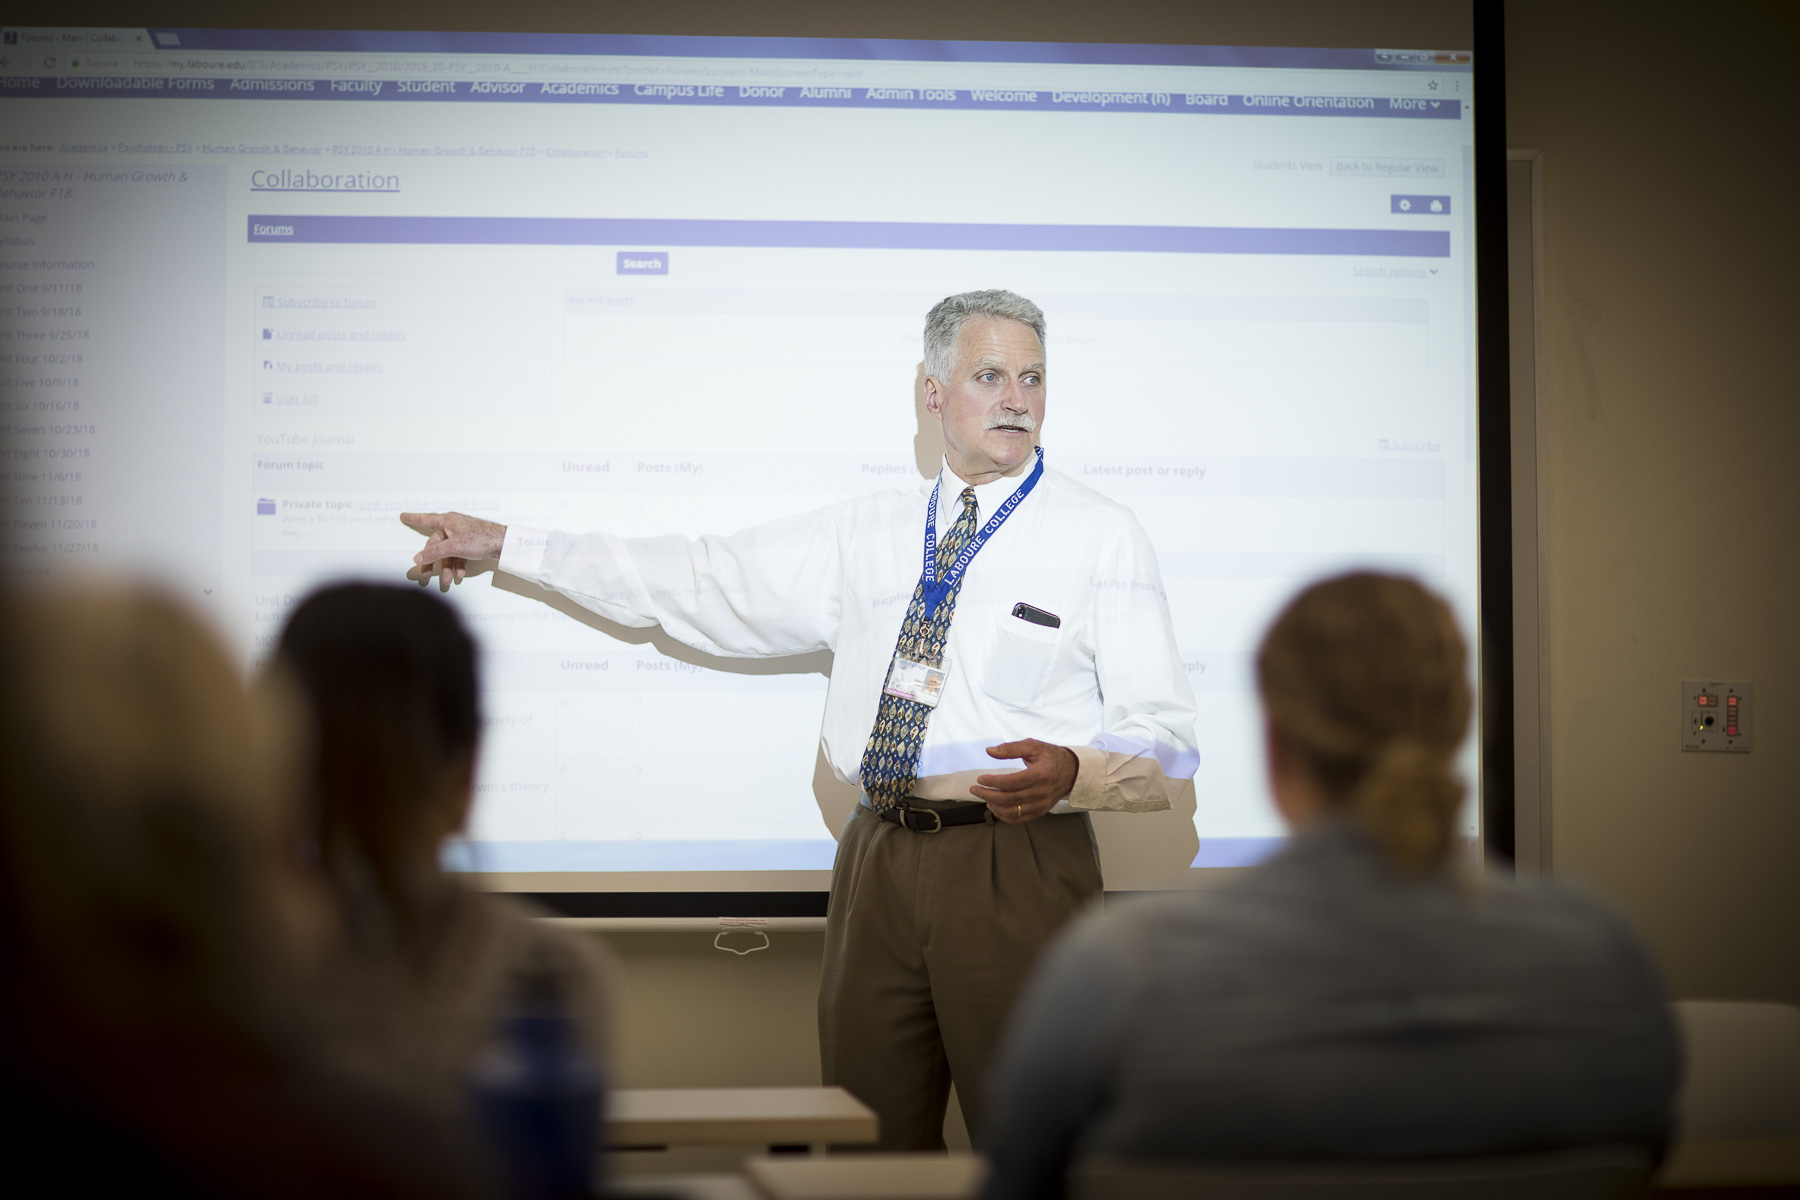 Instructor teaches with projector